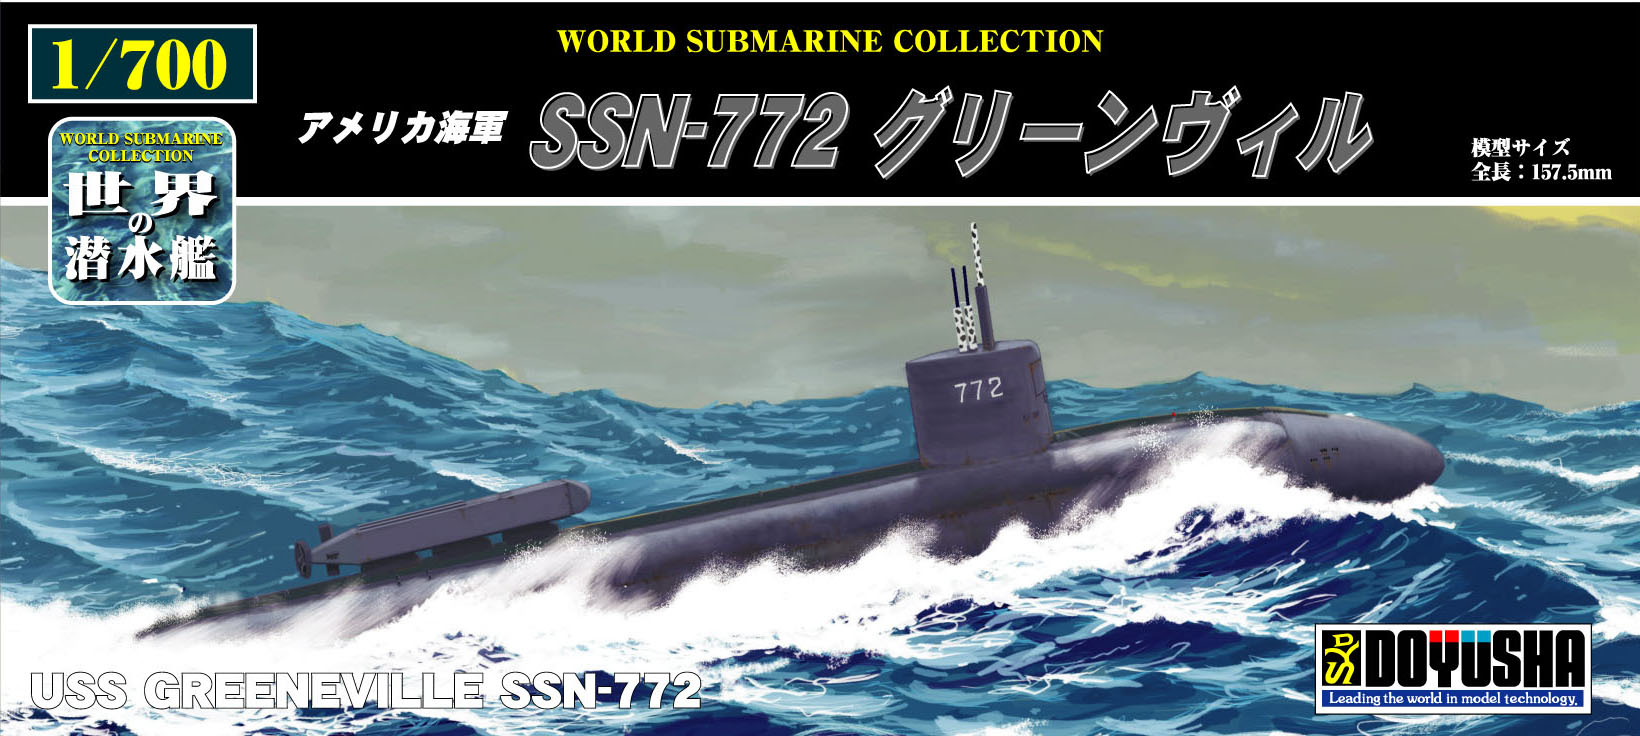 Doyusha 1/700 USS Navy Greenville Submarine SSN-772